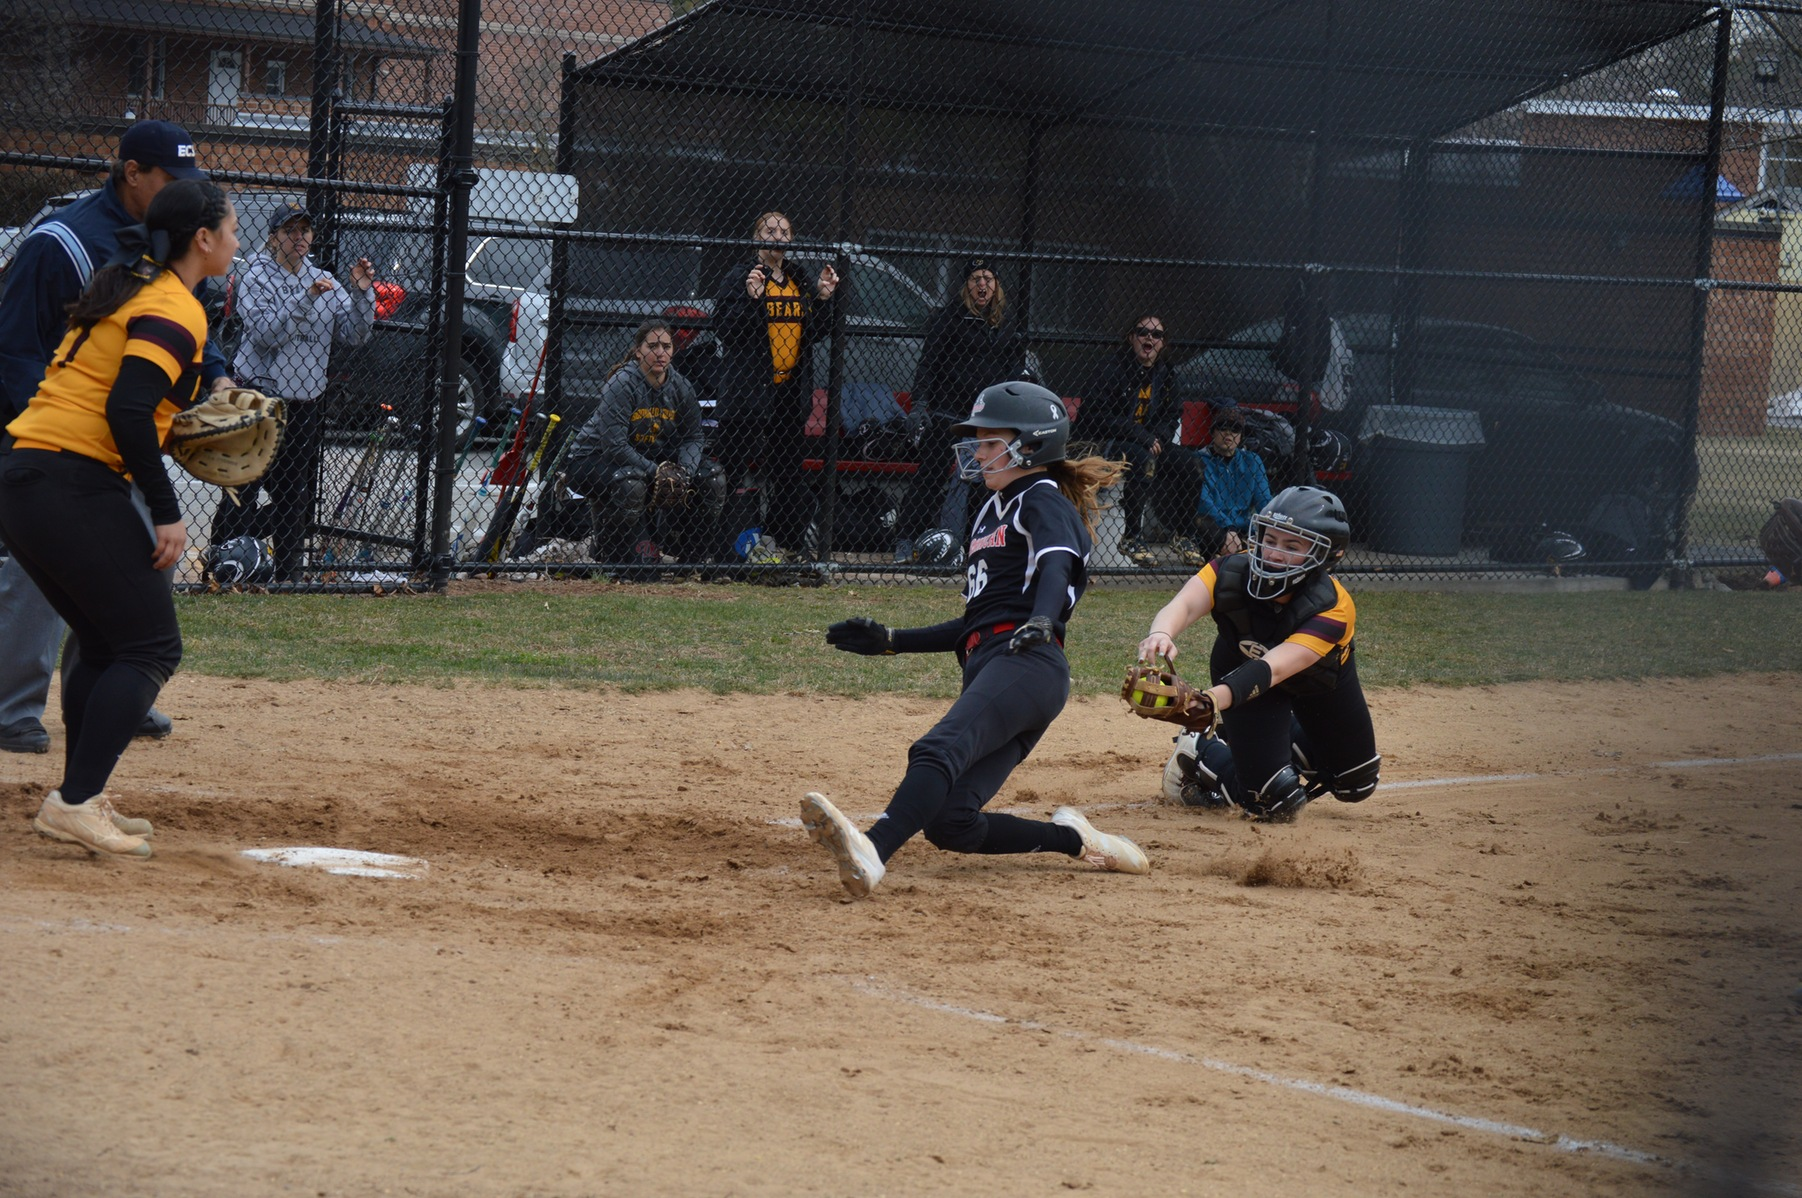 The Lady Chargers softball squad swept a CACC double-header on the road this afternoon as they defeated Chestnut Hill College.